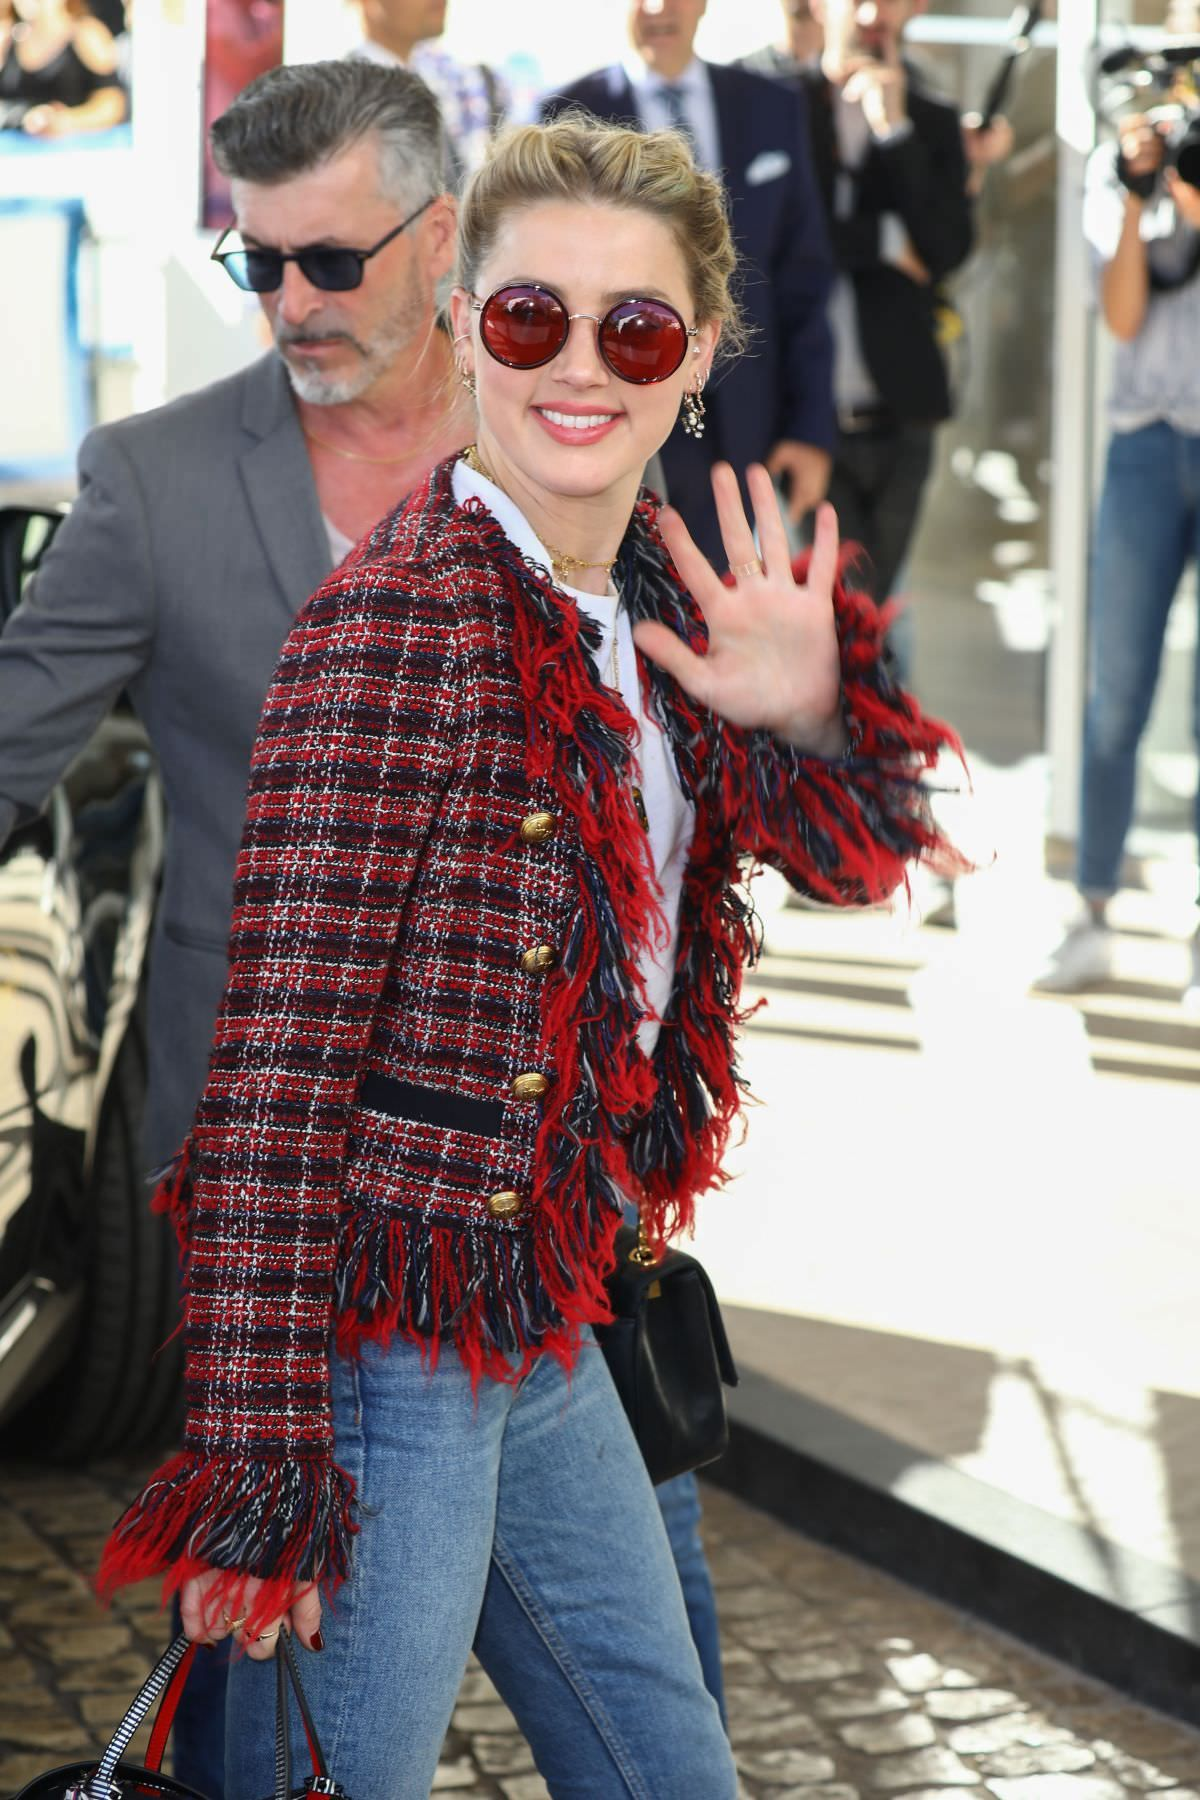 Amber Heard Arrives at 2019 Cannes film festival